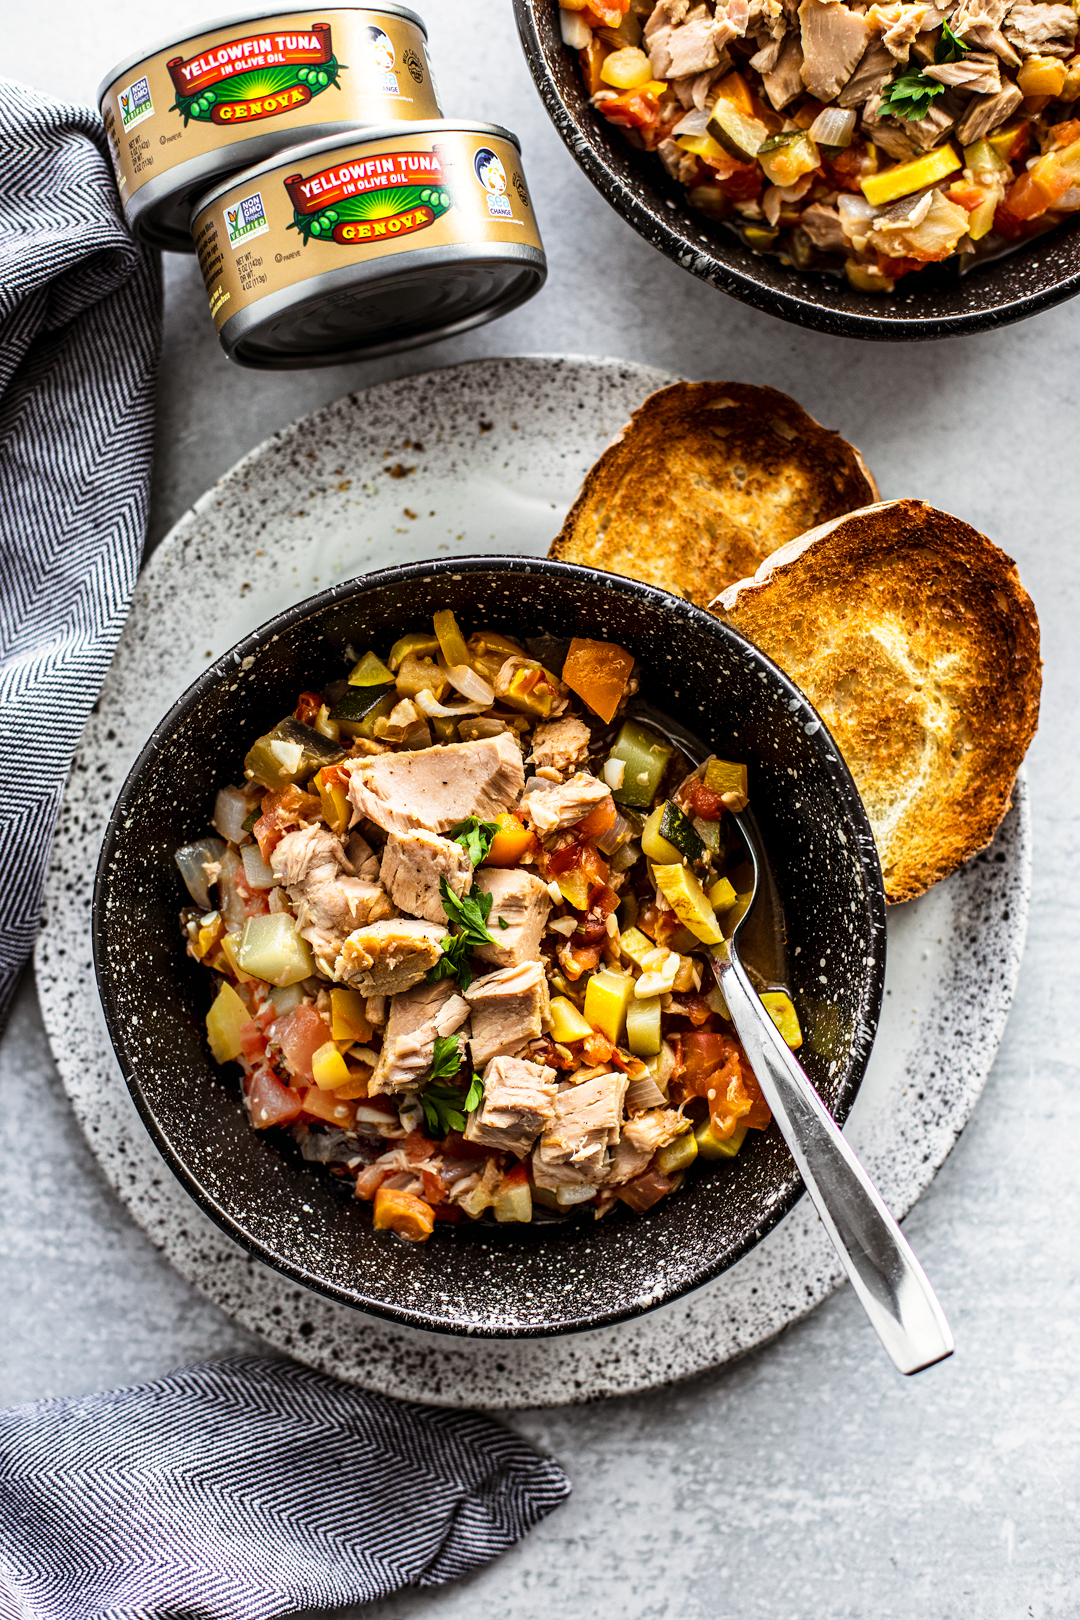 Bowl of ratatouille with tuna on a plate with crusty bread.